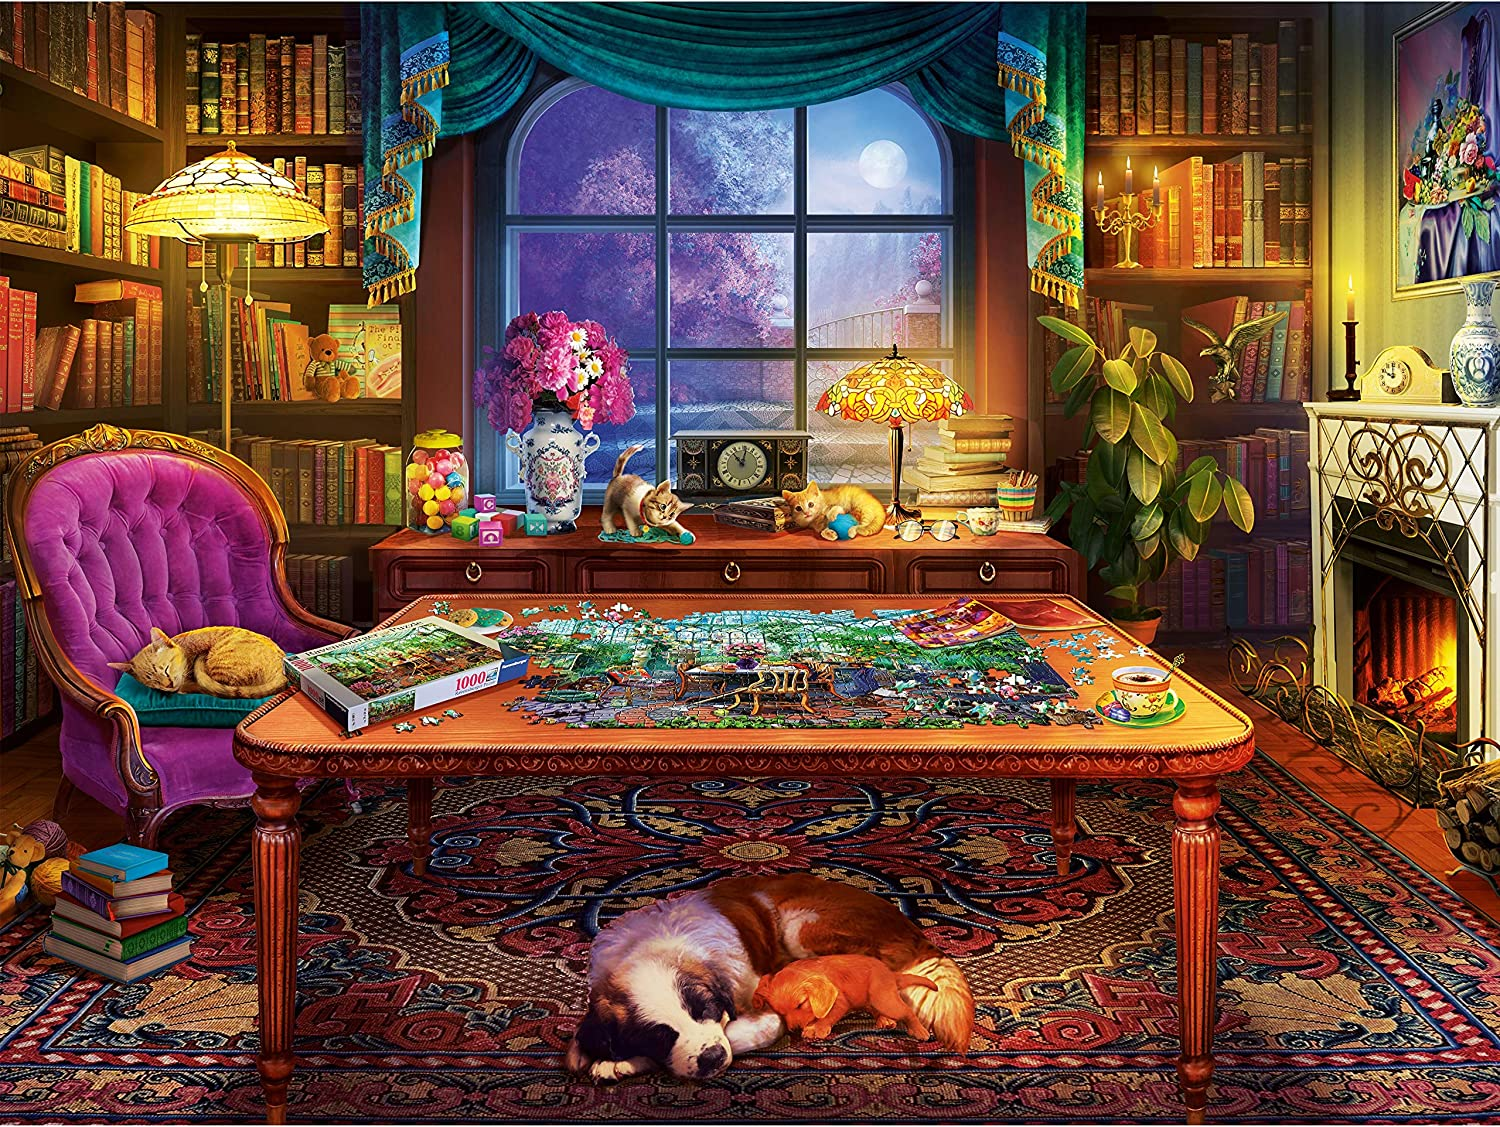 Ravensburger Cozy Series: Puzzler's Place 750 Piece Large Format Jigsaw Puzzle for Adults - Every Piece is Unique, Softclick Technology Means Pieces Fit Together Perfectly